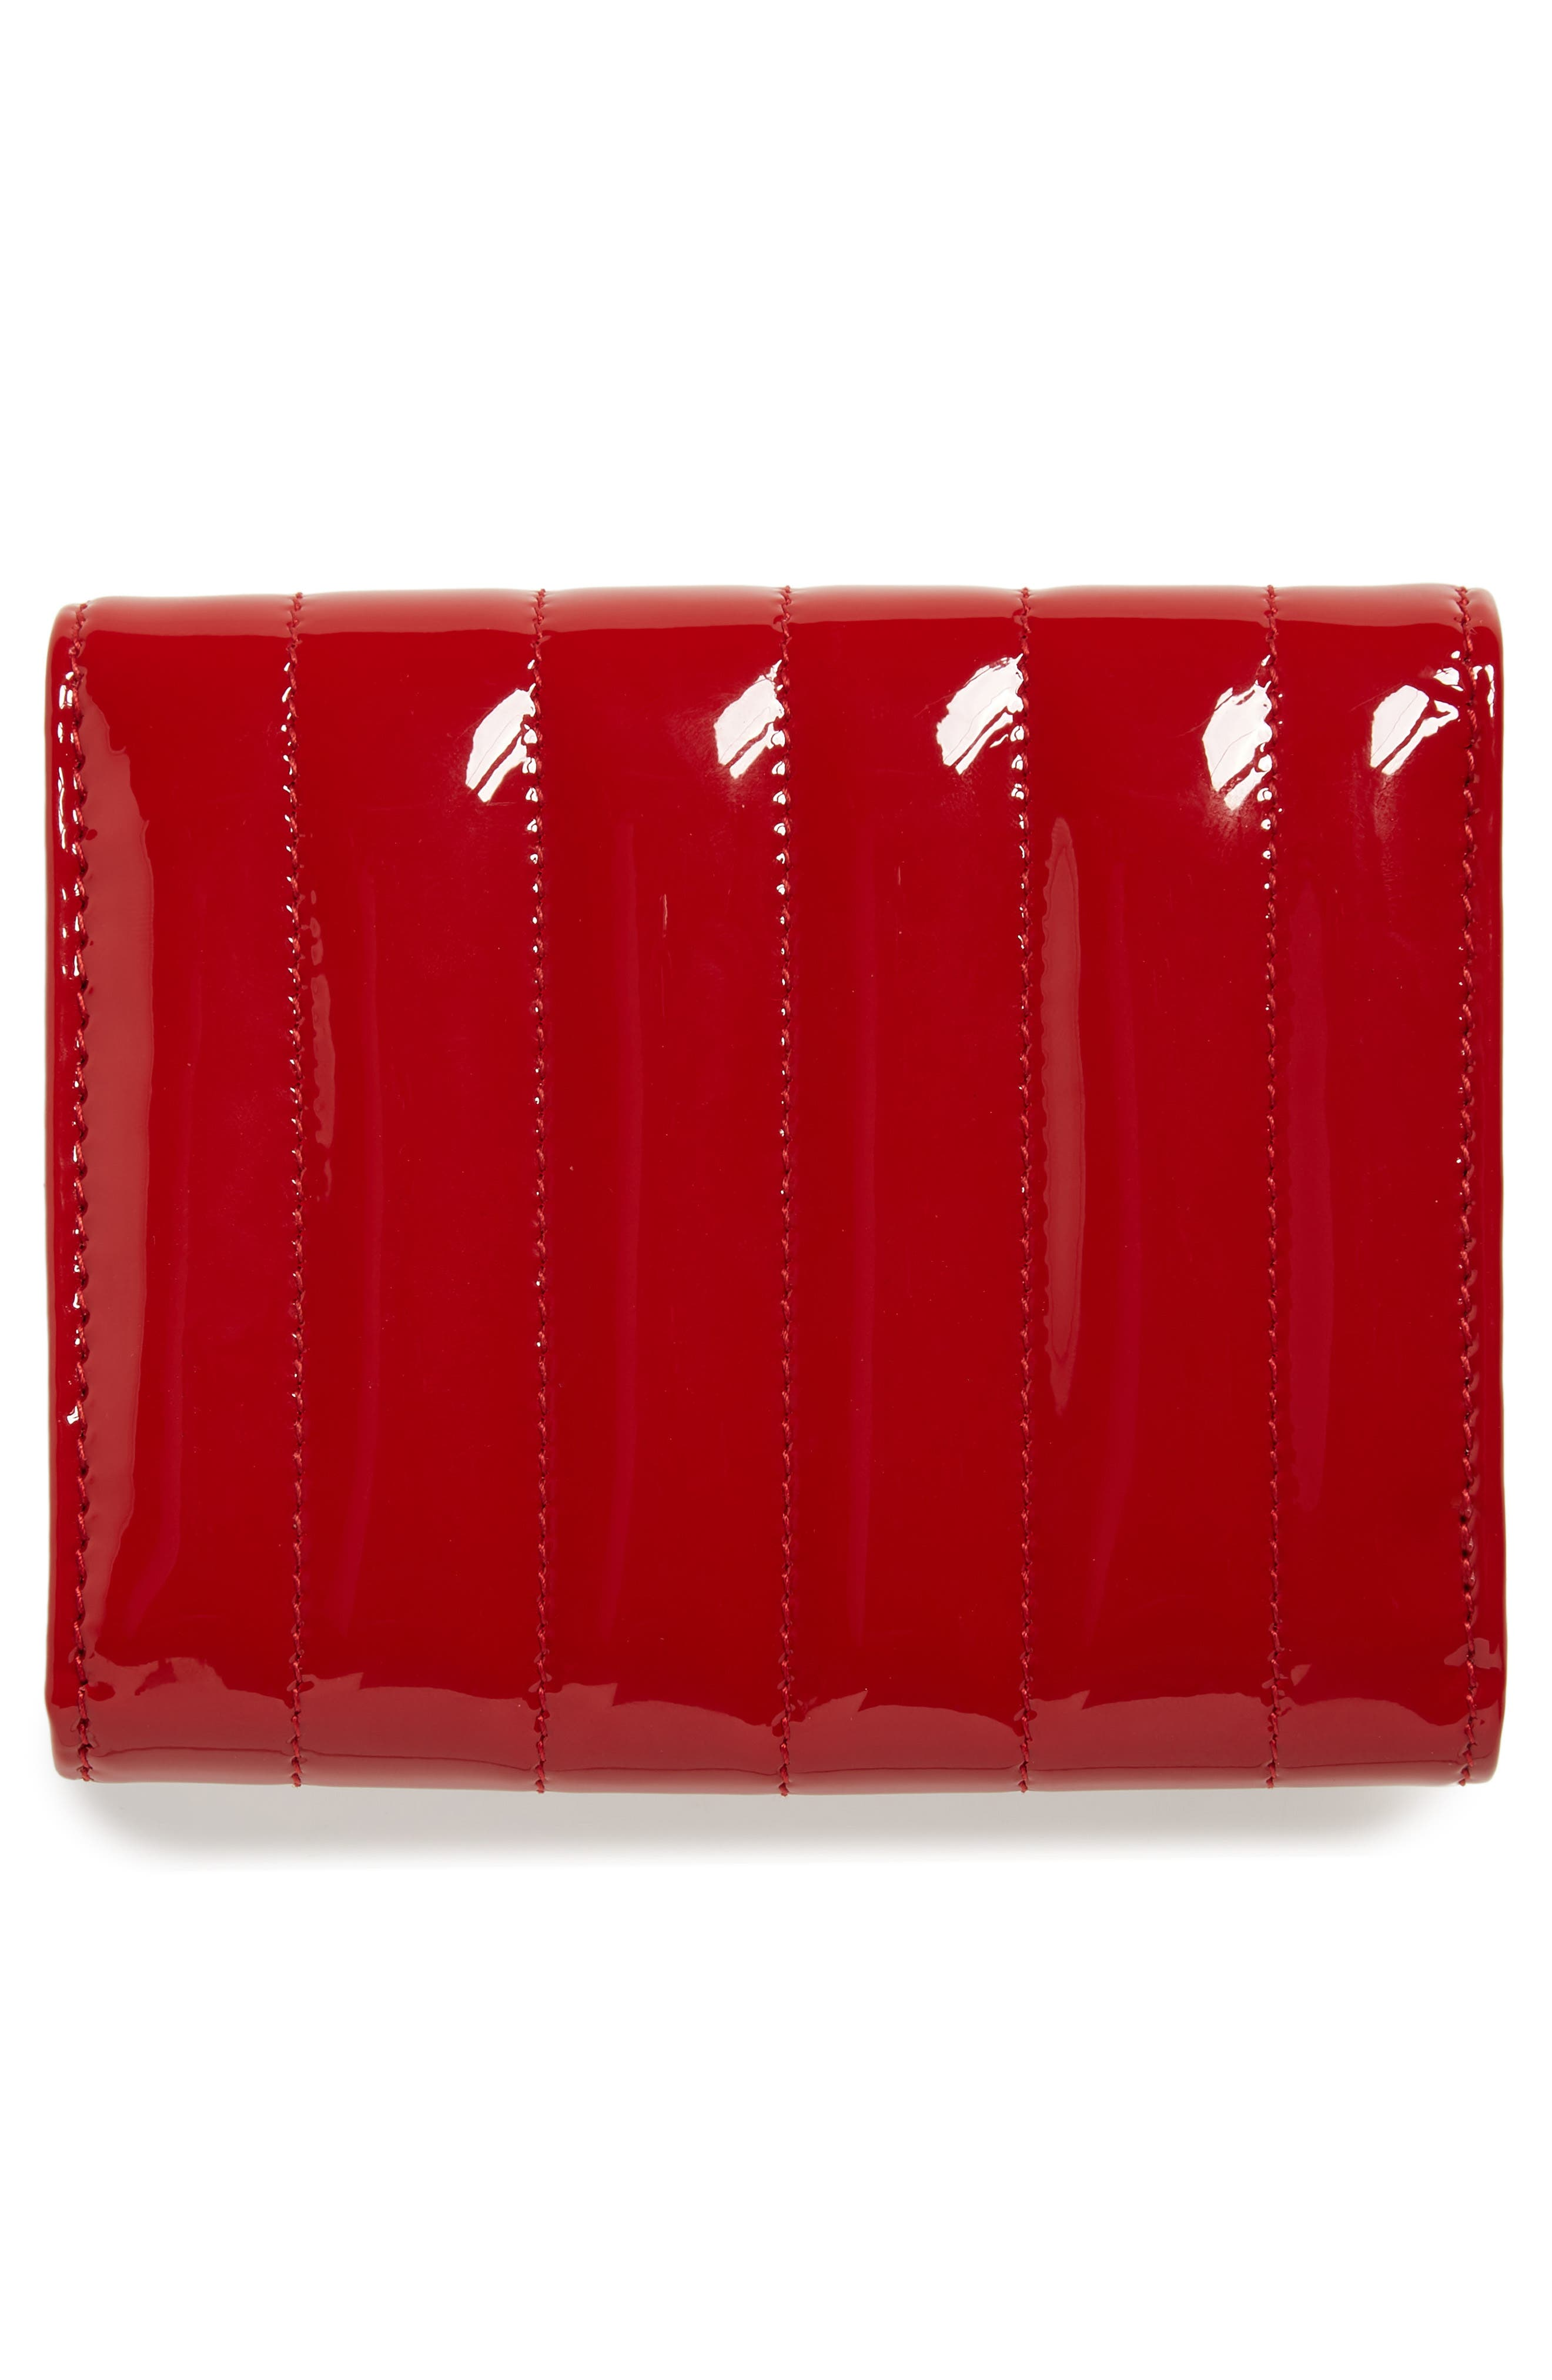 Vicky Patent Leather Trifold Wallet,                             Alternate thumbnail 4, color,                             ROUGE EROS/ ROUGE EROS